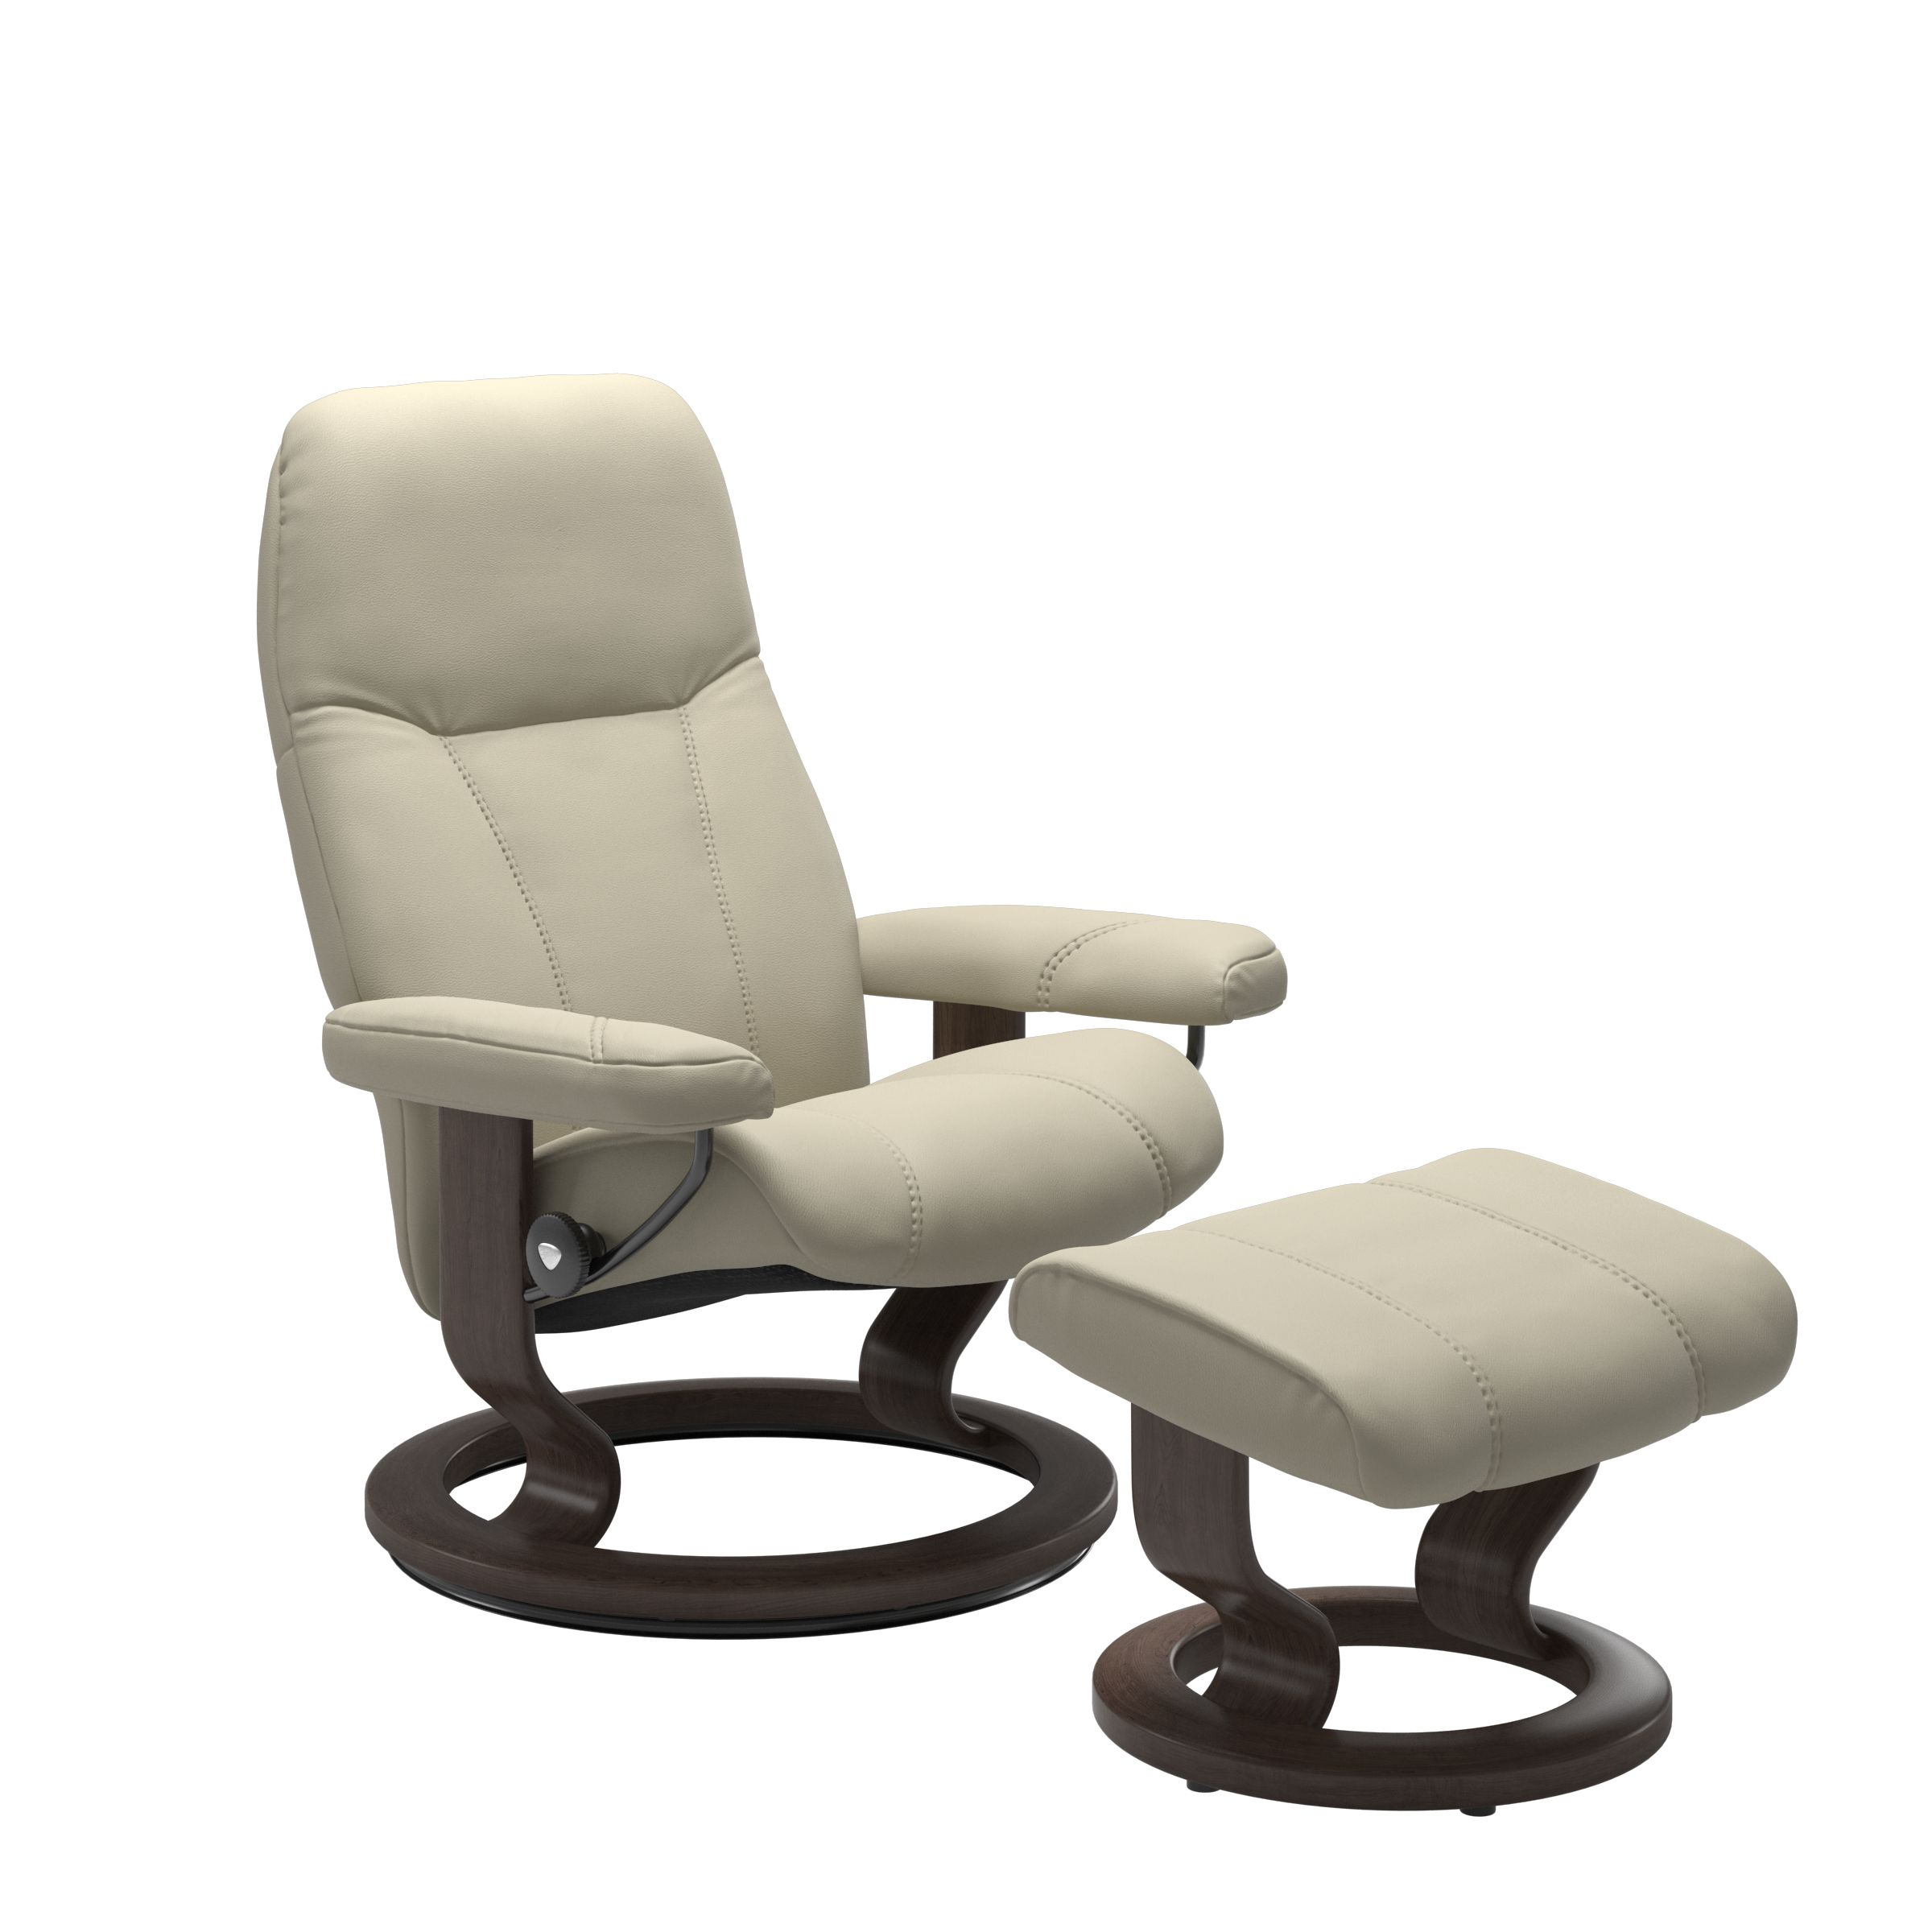 Stressless Relaxsessel Mit Hocker Stressless Consul Recliners